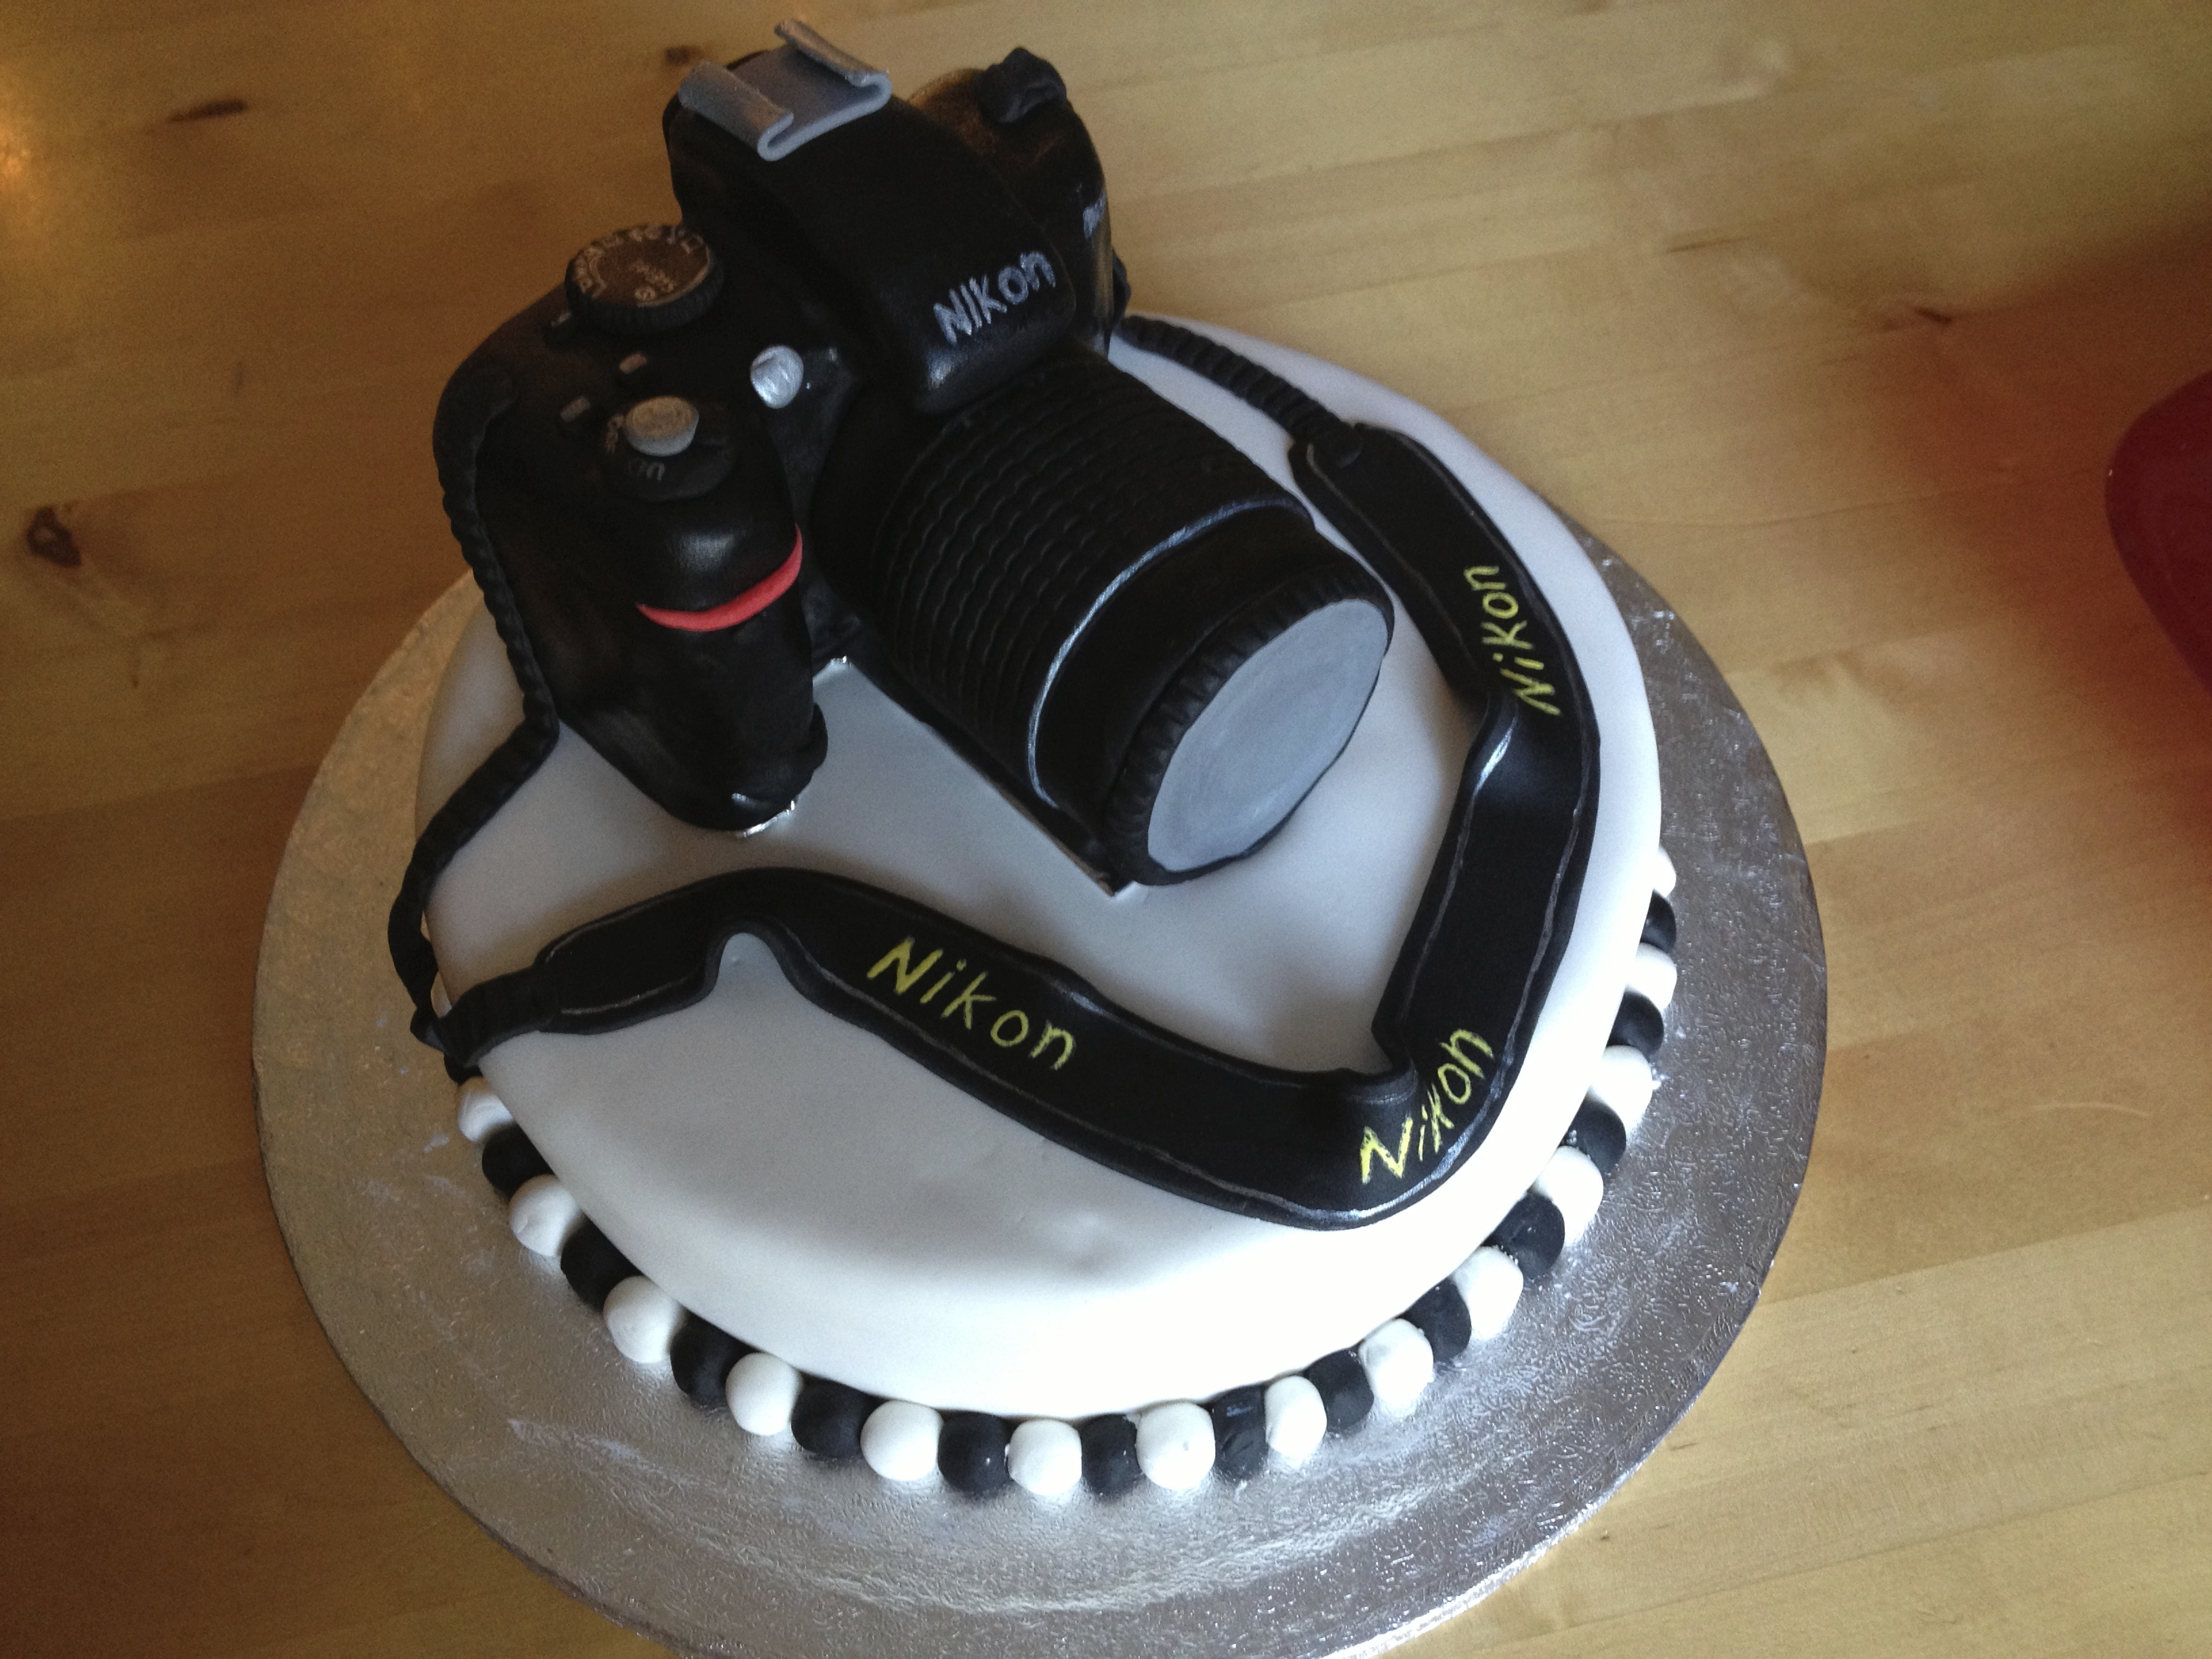 18th Birthday Camera Cake The Great British Bake Off